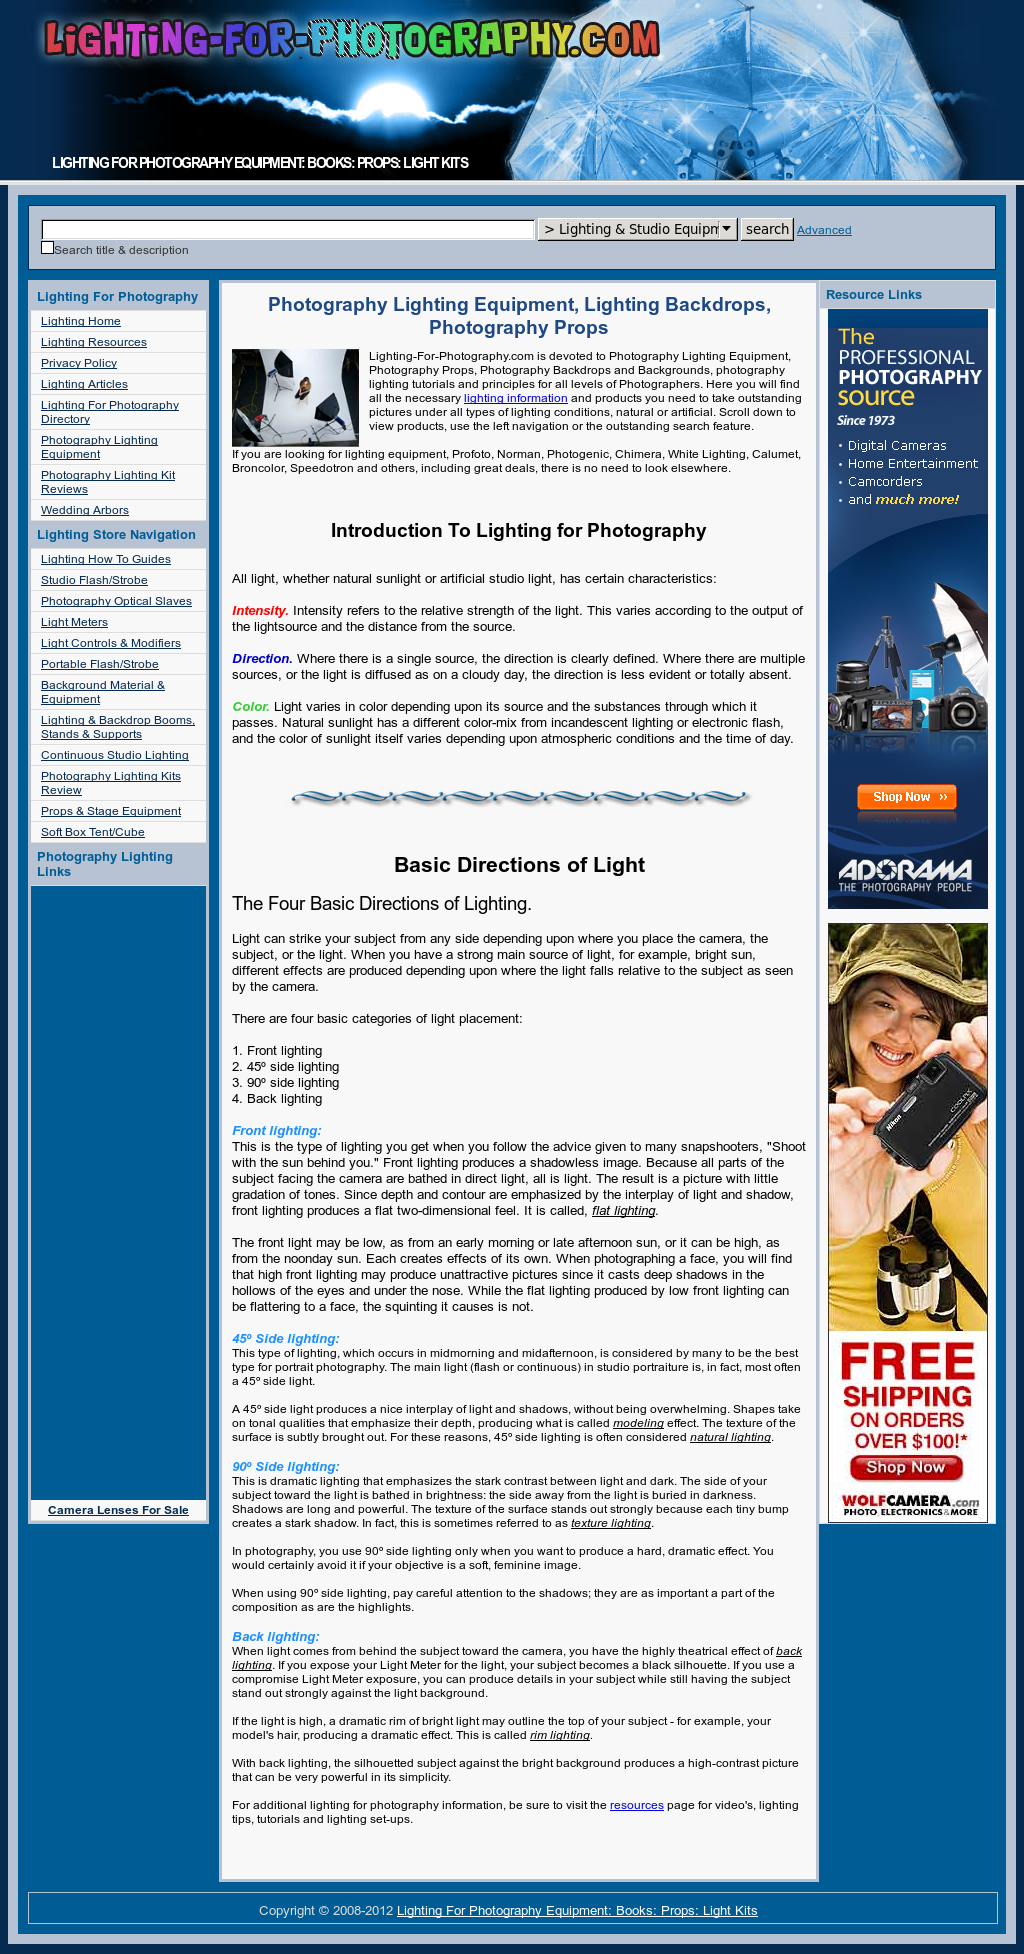 Lighting For Photography Equipment Competitors, Revenue and